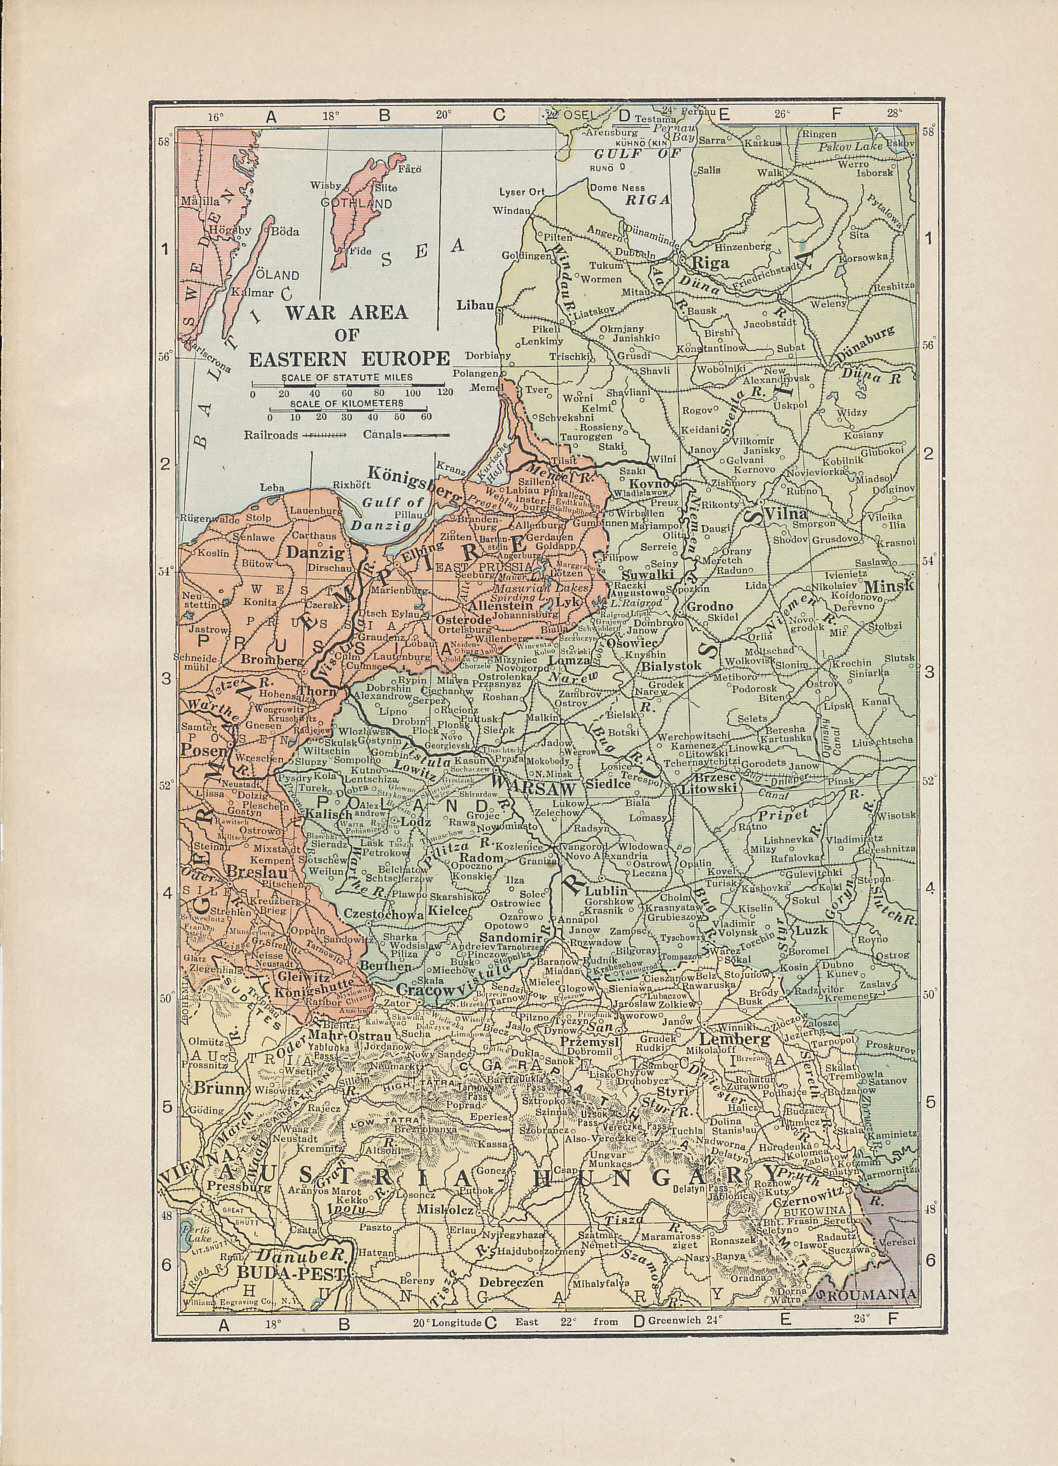 1916 Eastern Front war zone map showing the borders between Russia, Germany, and Austria-Hungary from the Baltic Sea to Romania.